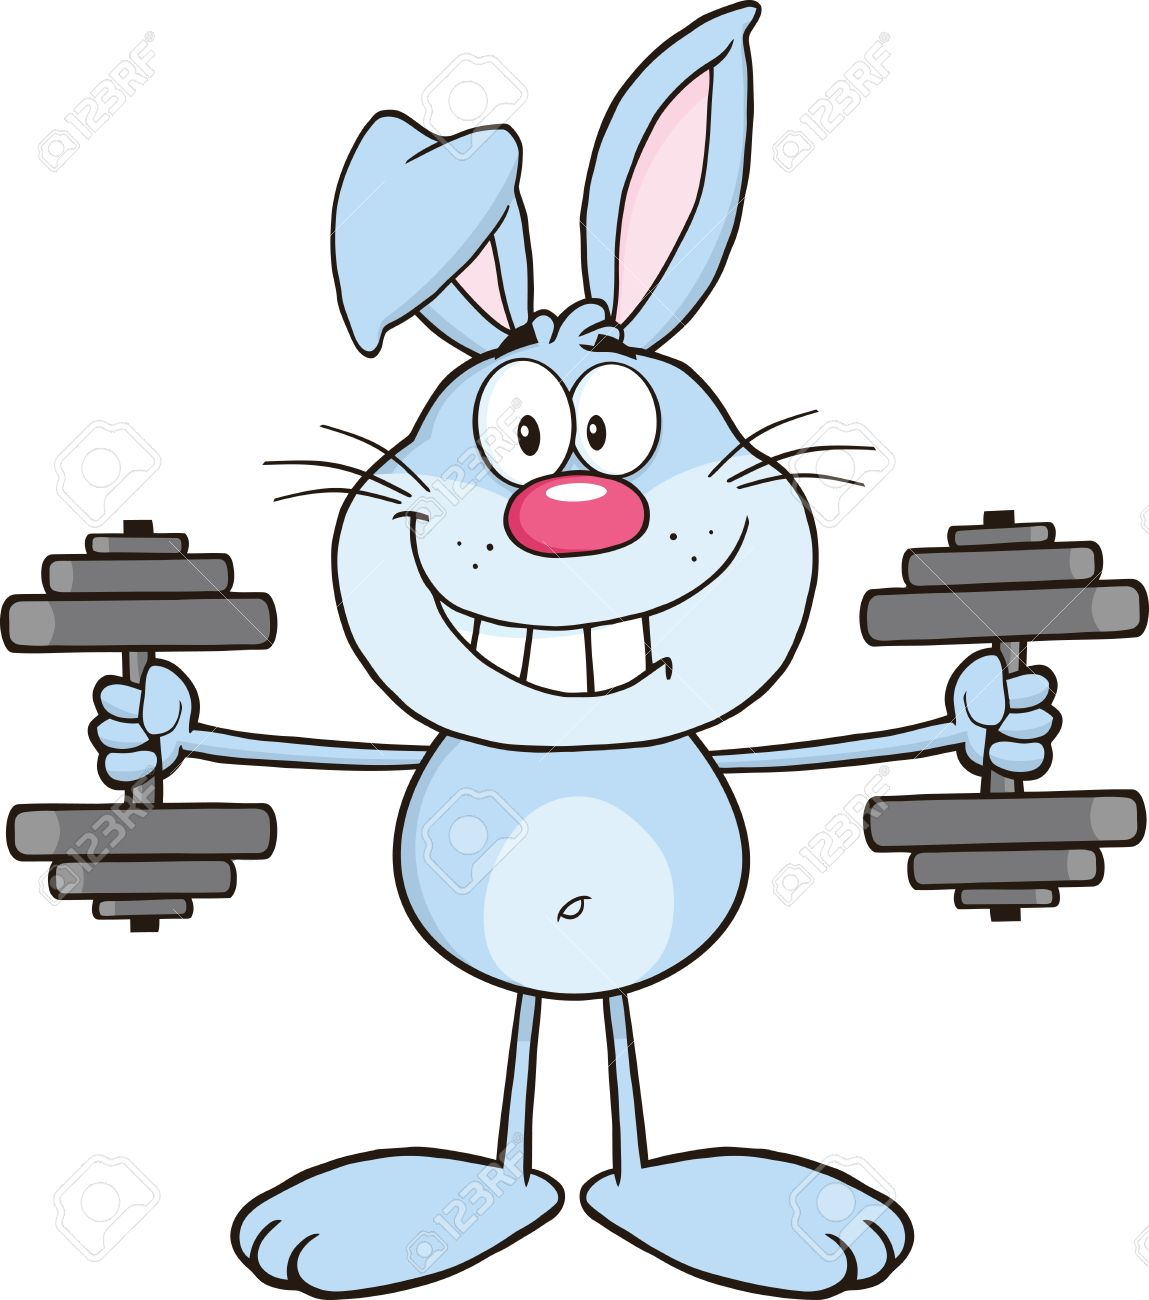 Smiling Blue Rabbit Cartoon Character Training With Dumbbells